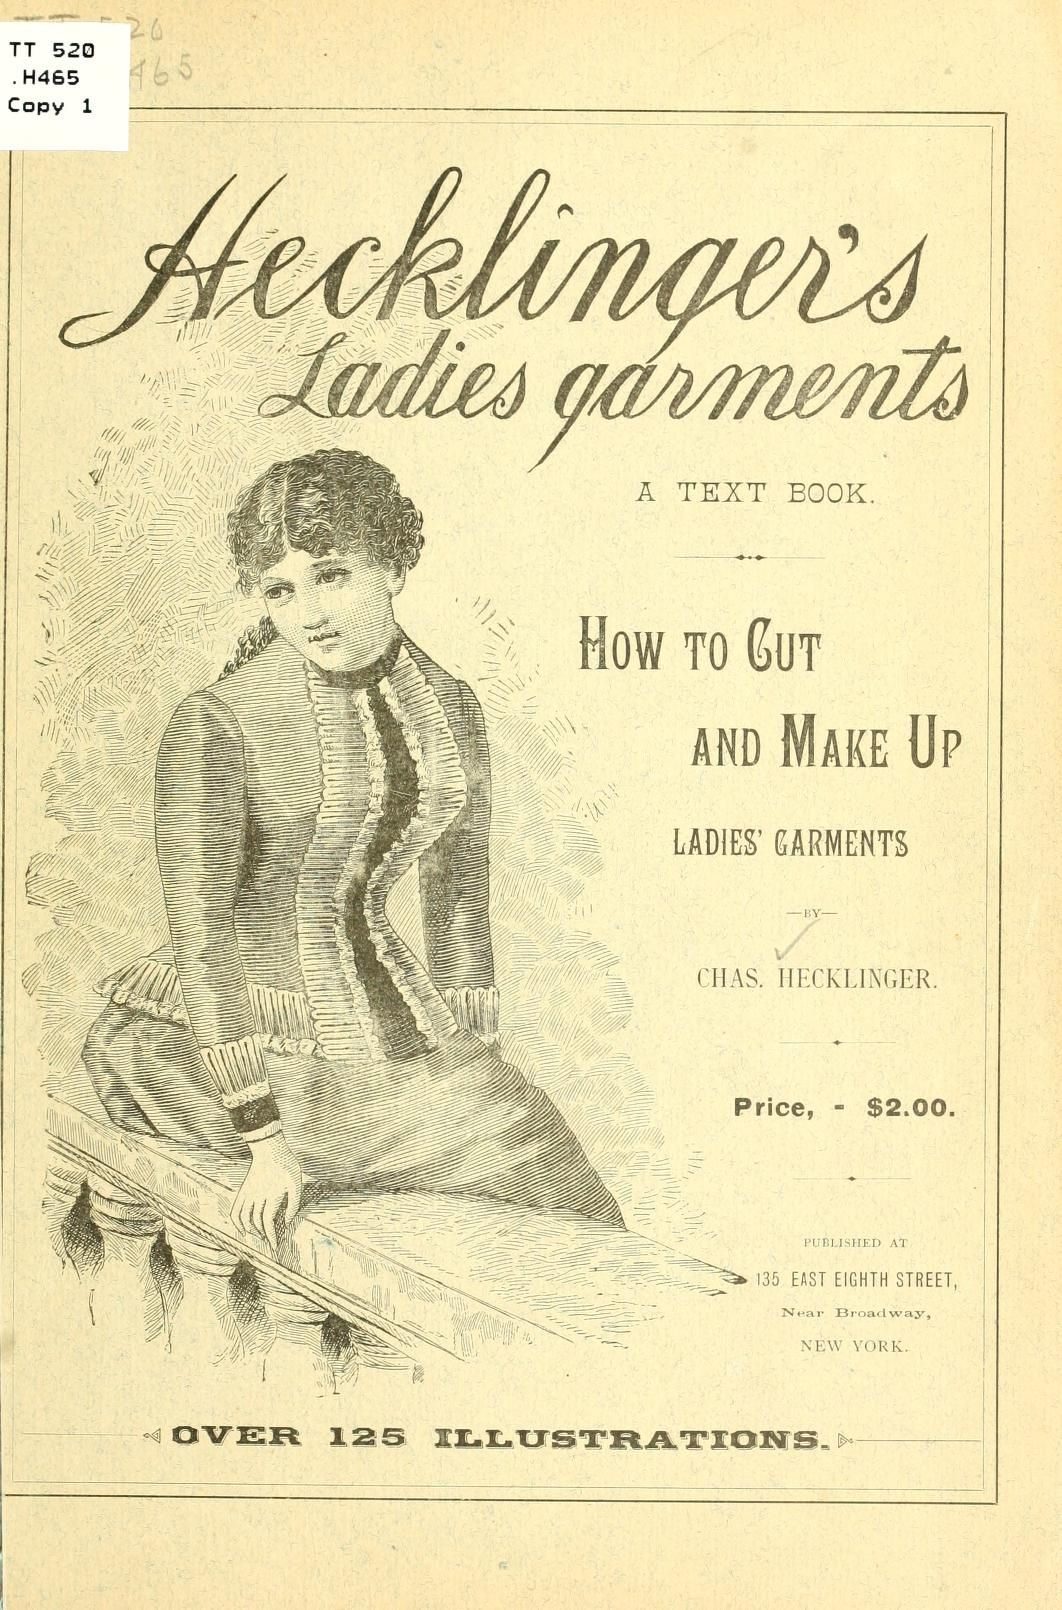 Hecklinger's ladies' garments: How to cut and make up ladies garments by Charles Hecklinger | published 1886